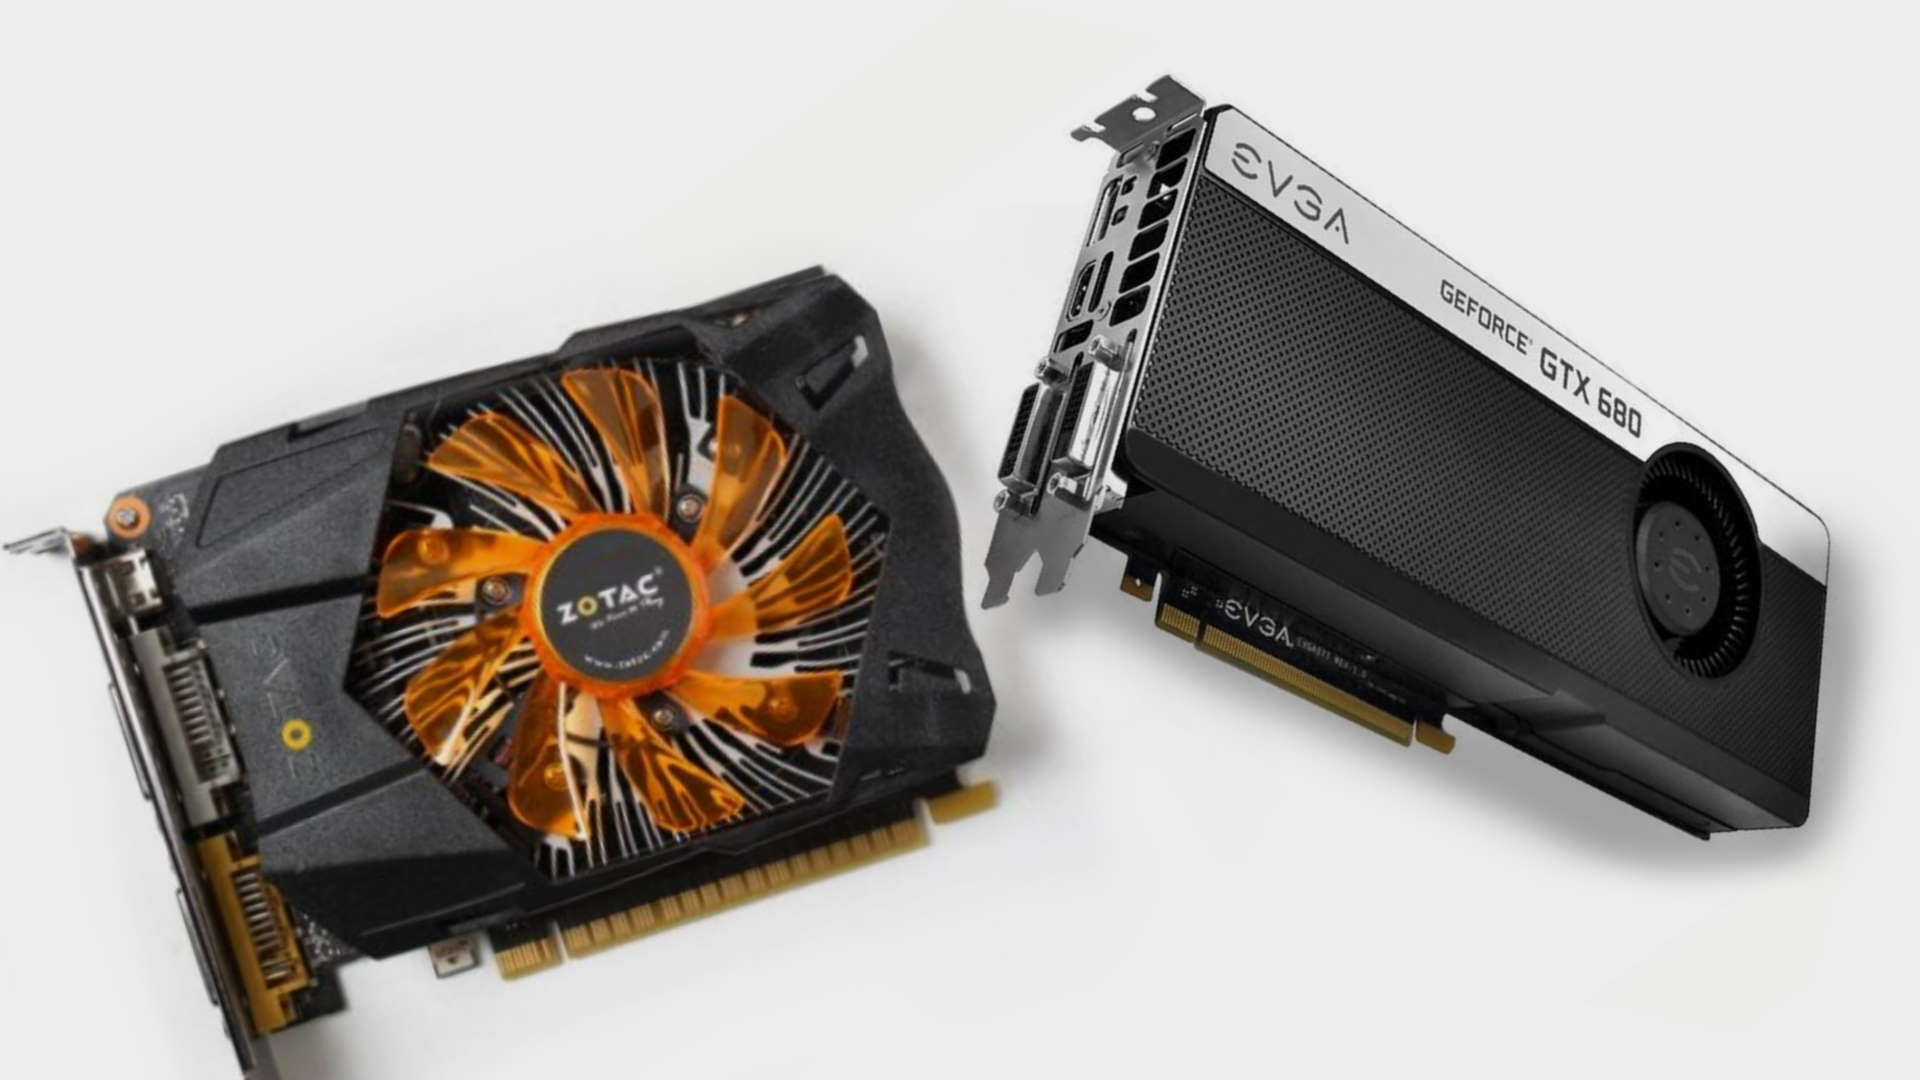 Two Nvidia GeForce GTX 600 series cards side by side on grey